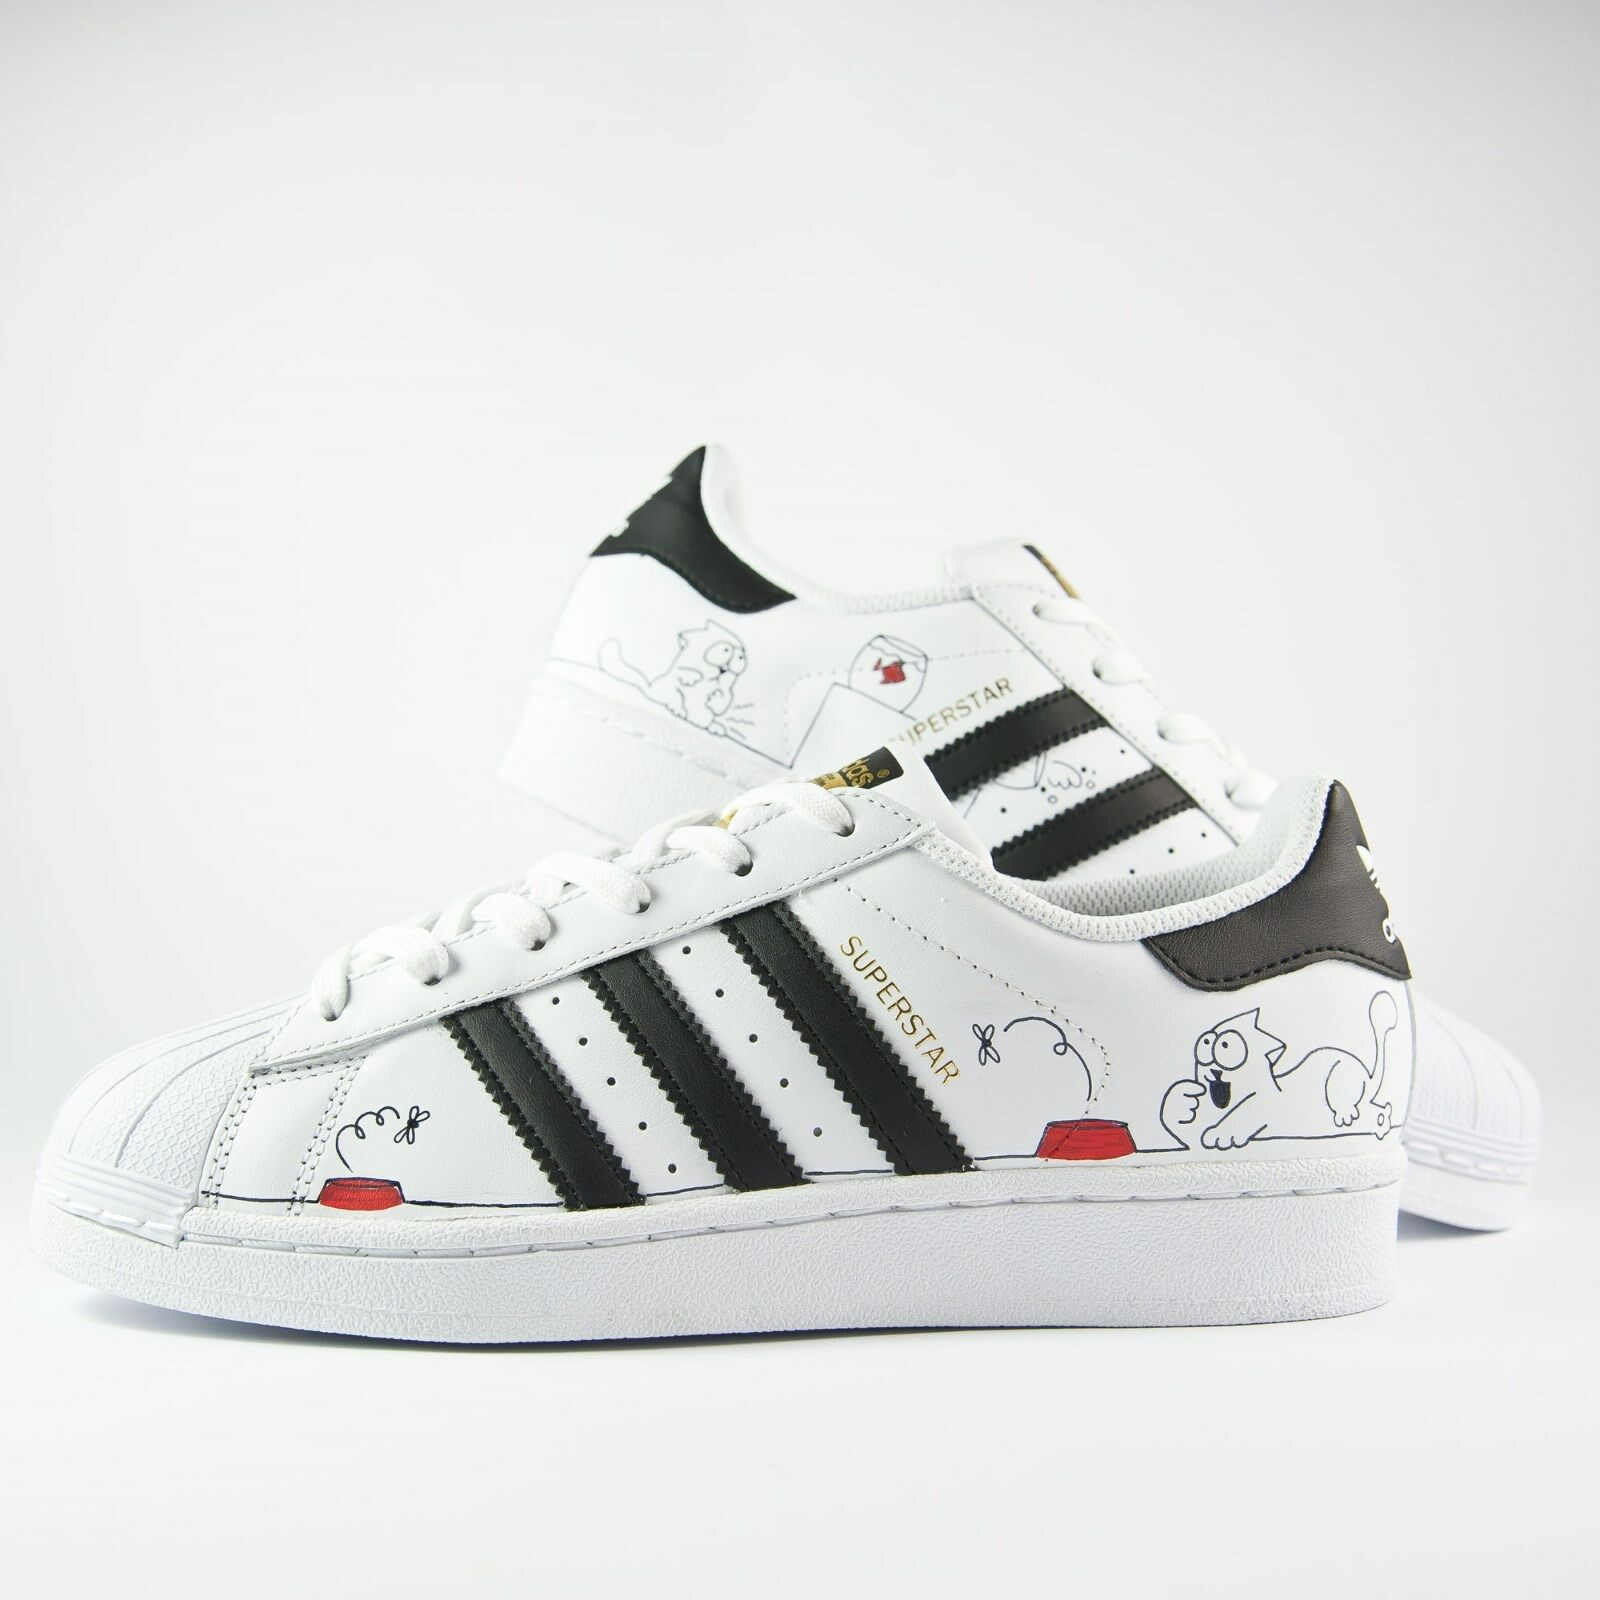 shoes Adidas Superstar - Hand Painted with Cat and Yarn